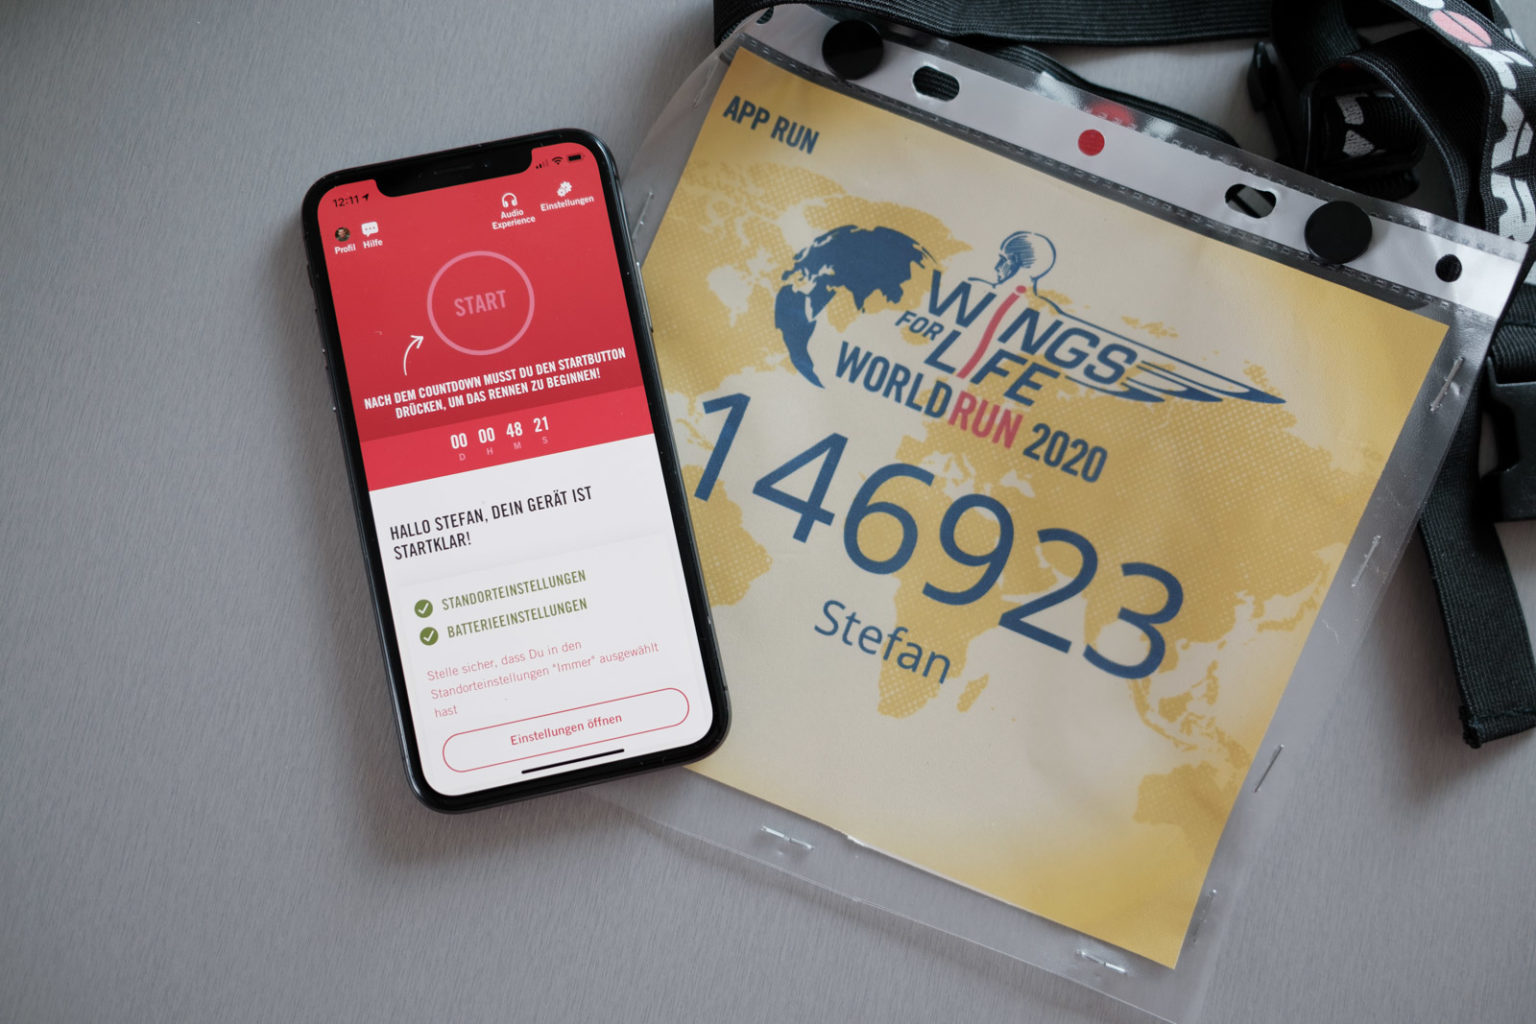 wings for life world run 2020 003